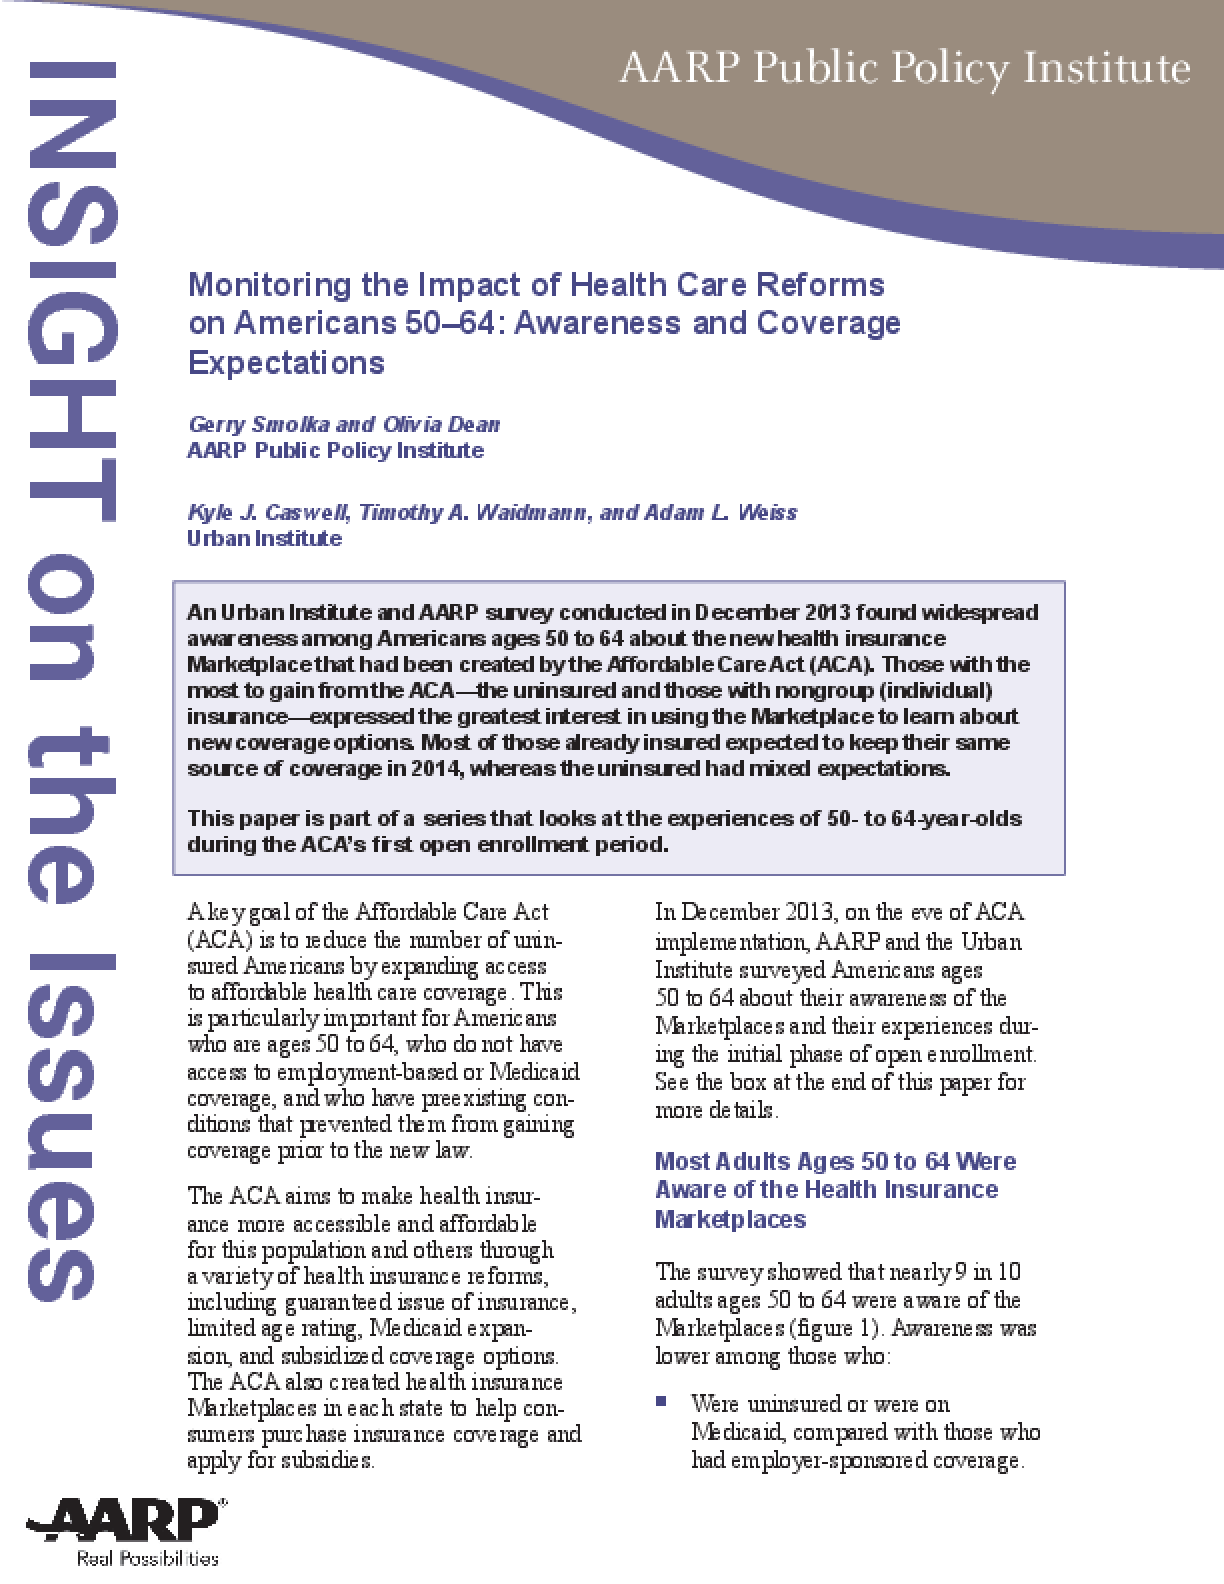 Monitoring the Impact of Health Care Reforms on Americans 50-64: Awareness and Coverage Expectations